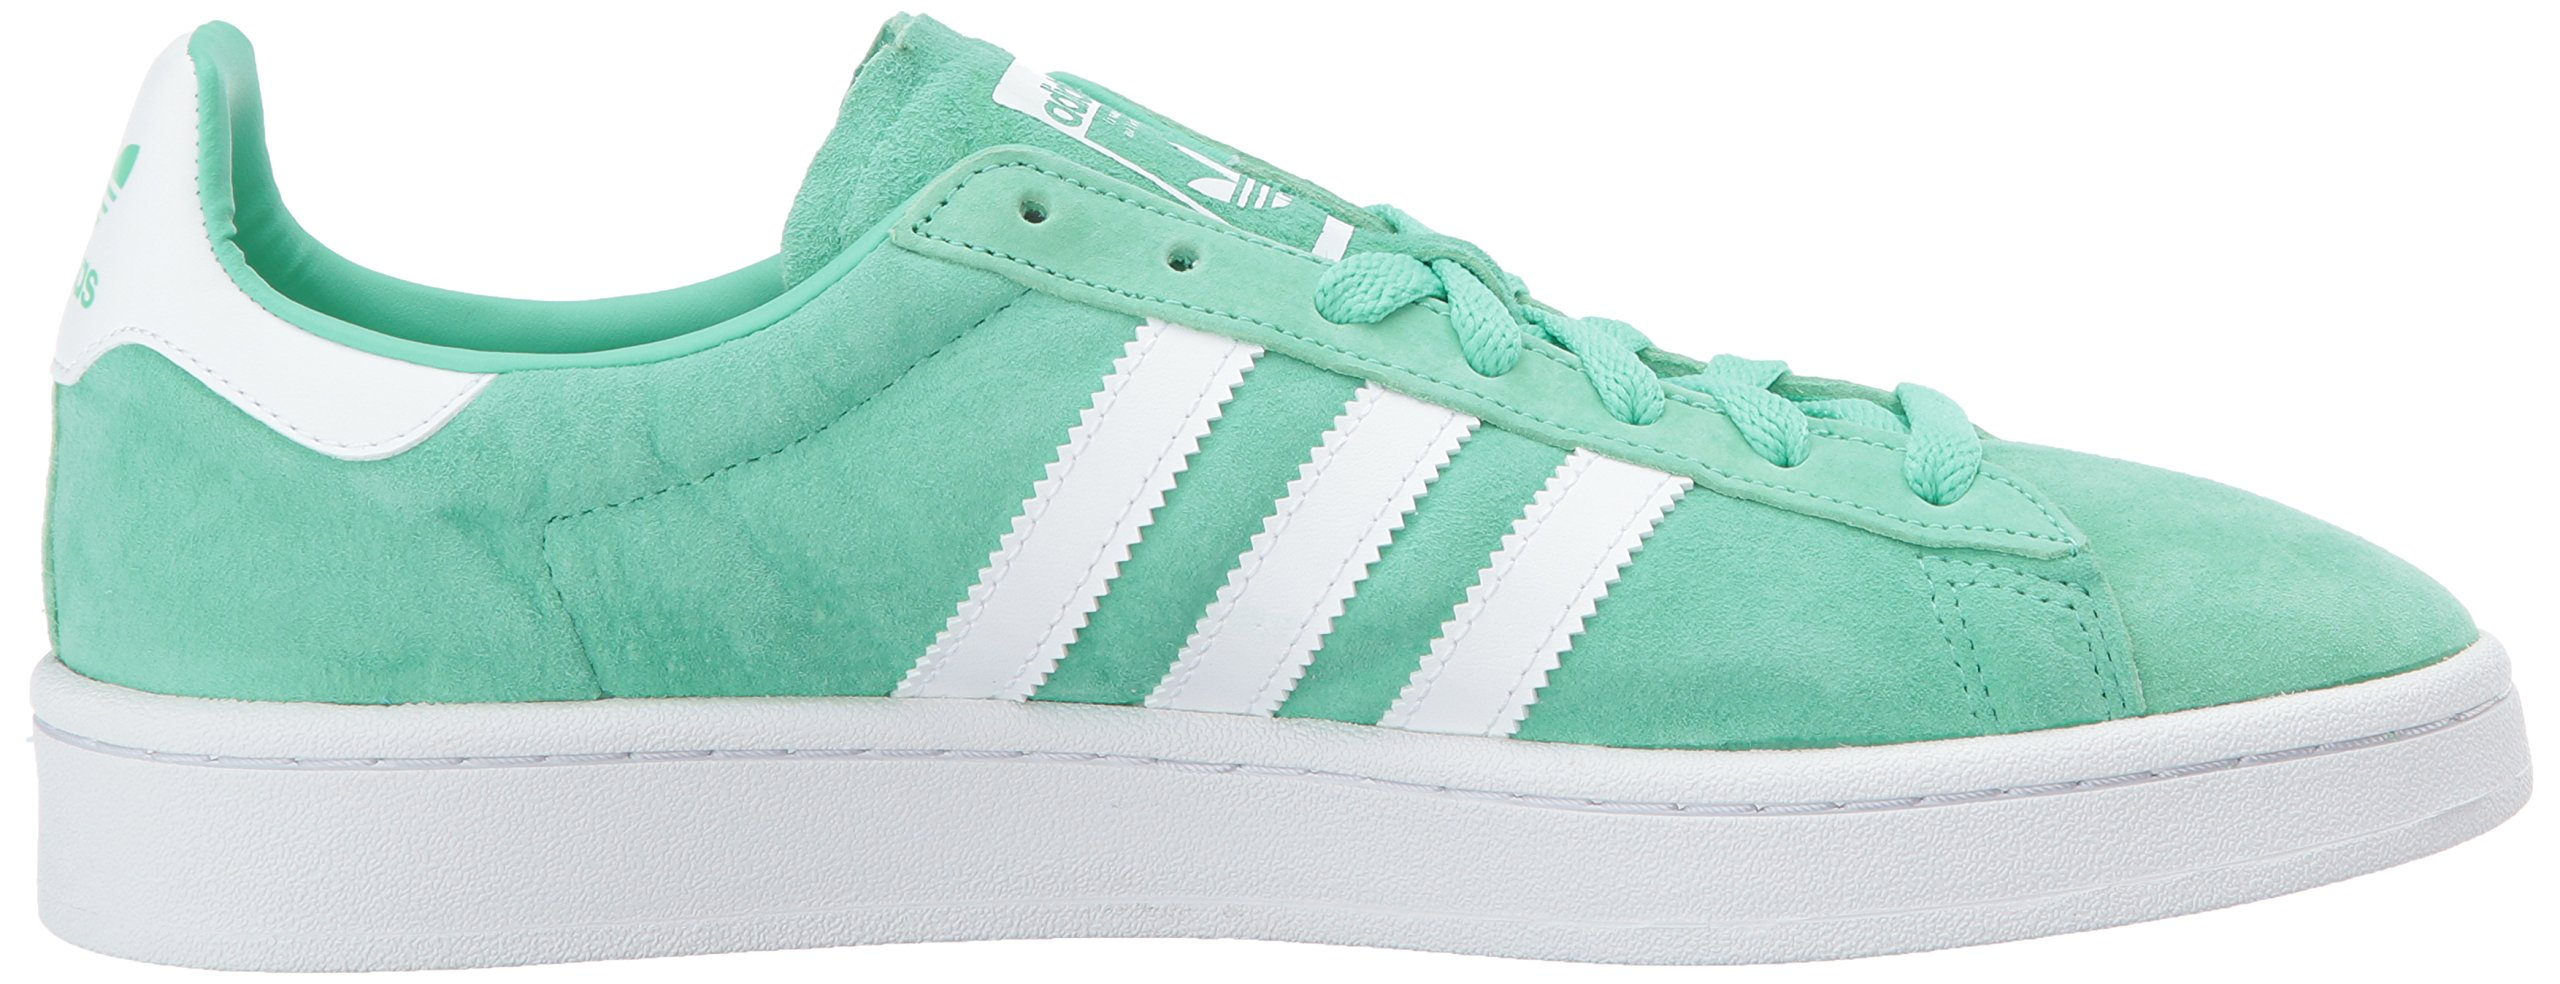 adidas Originals Men's Campus Sneakers -, Green Glow Crystal White, (11 M US) by adidas Originals (Image #7)